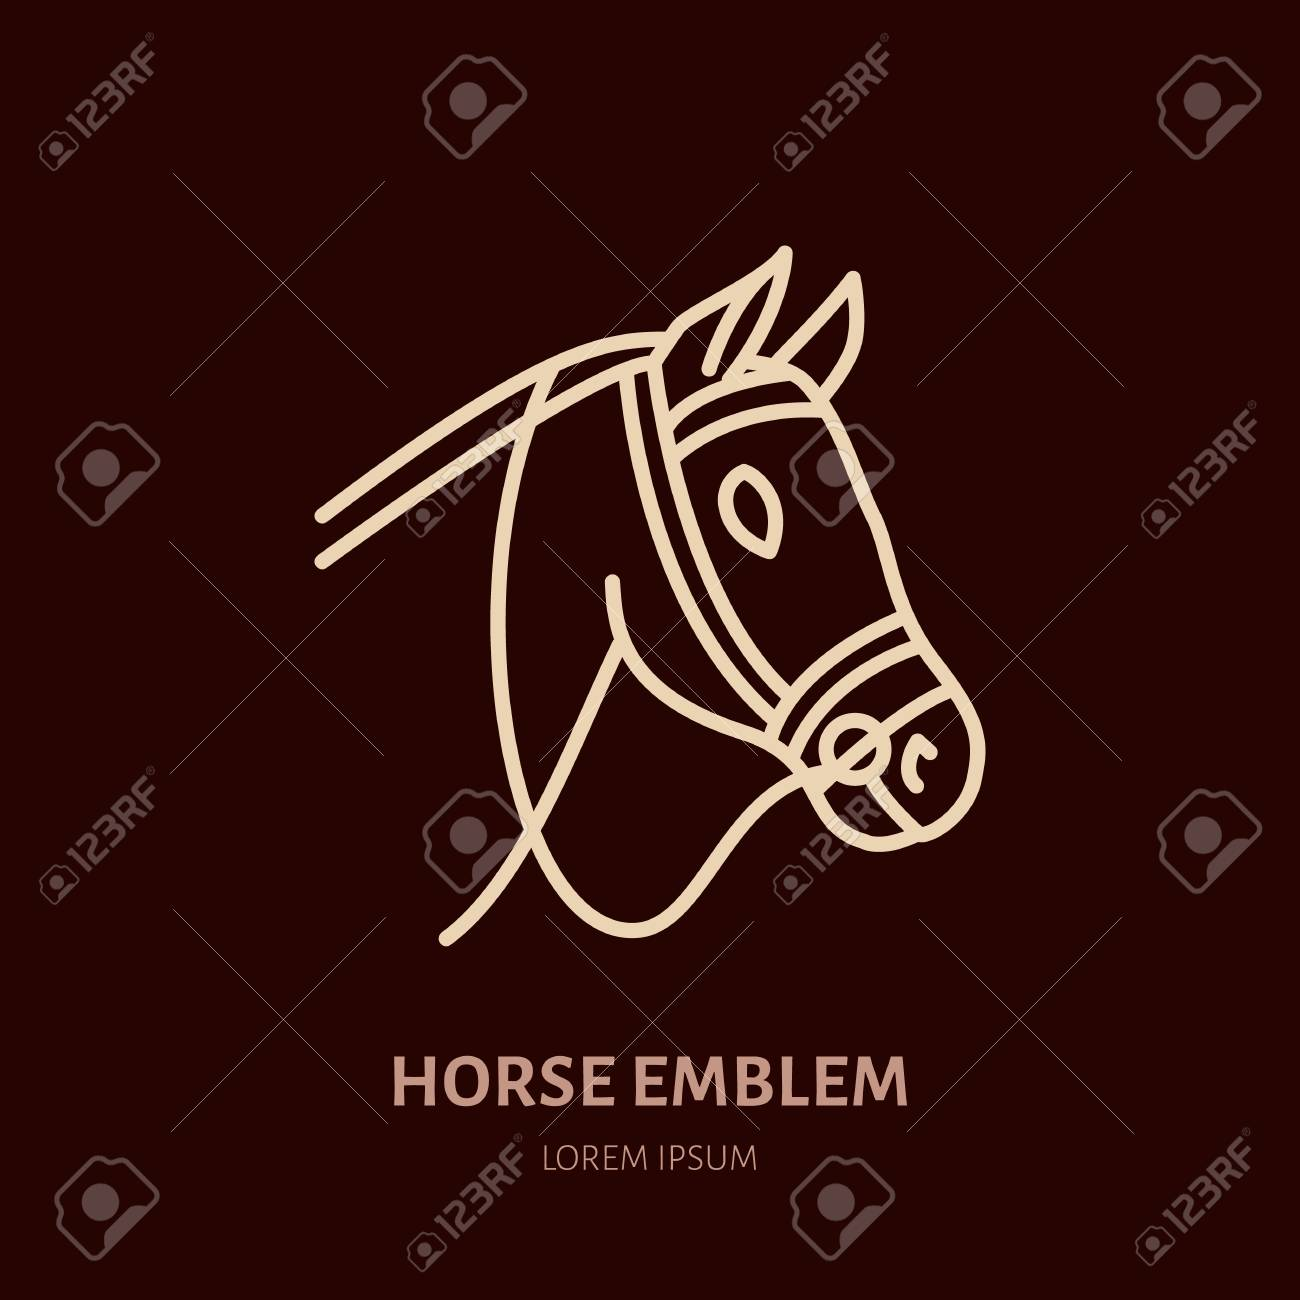 Horse Cute Pony Flat Line Icon Logo For Equestrian Club Horserace Royalty Free Cliparts Vectors And Stock Illustration Image 79573903